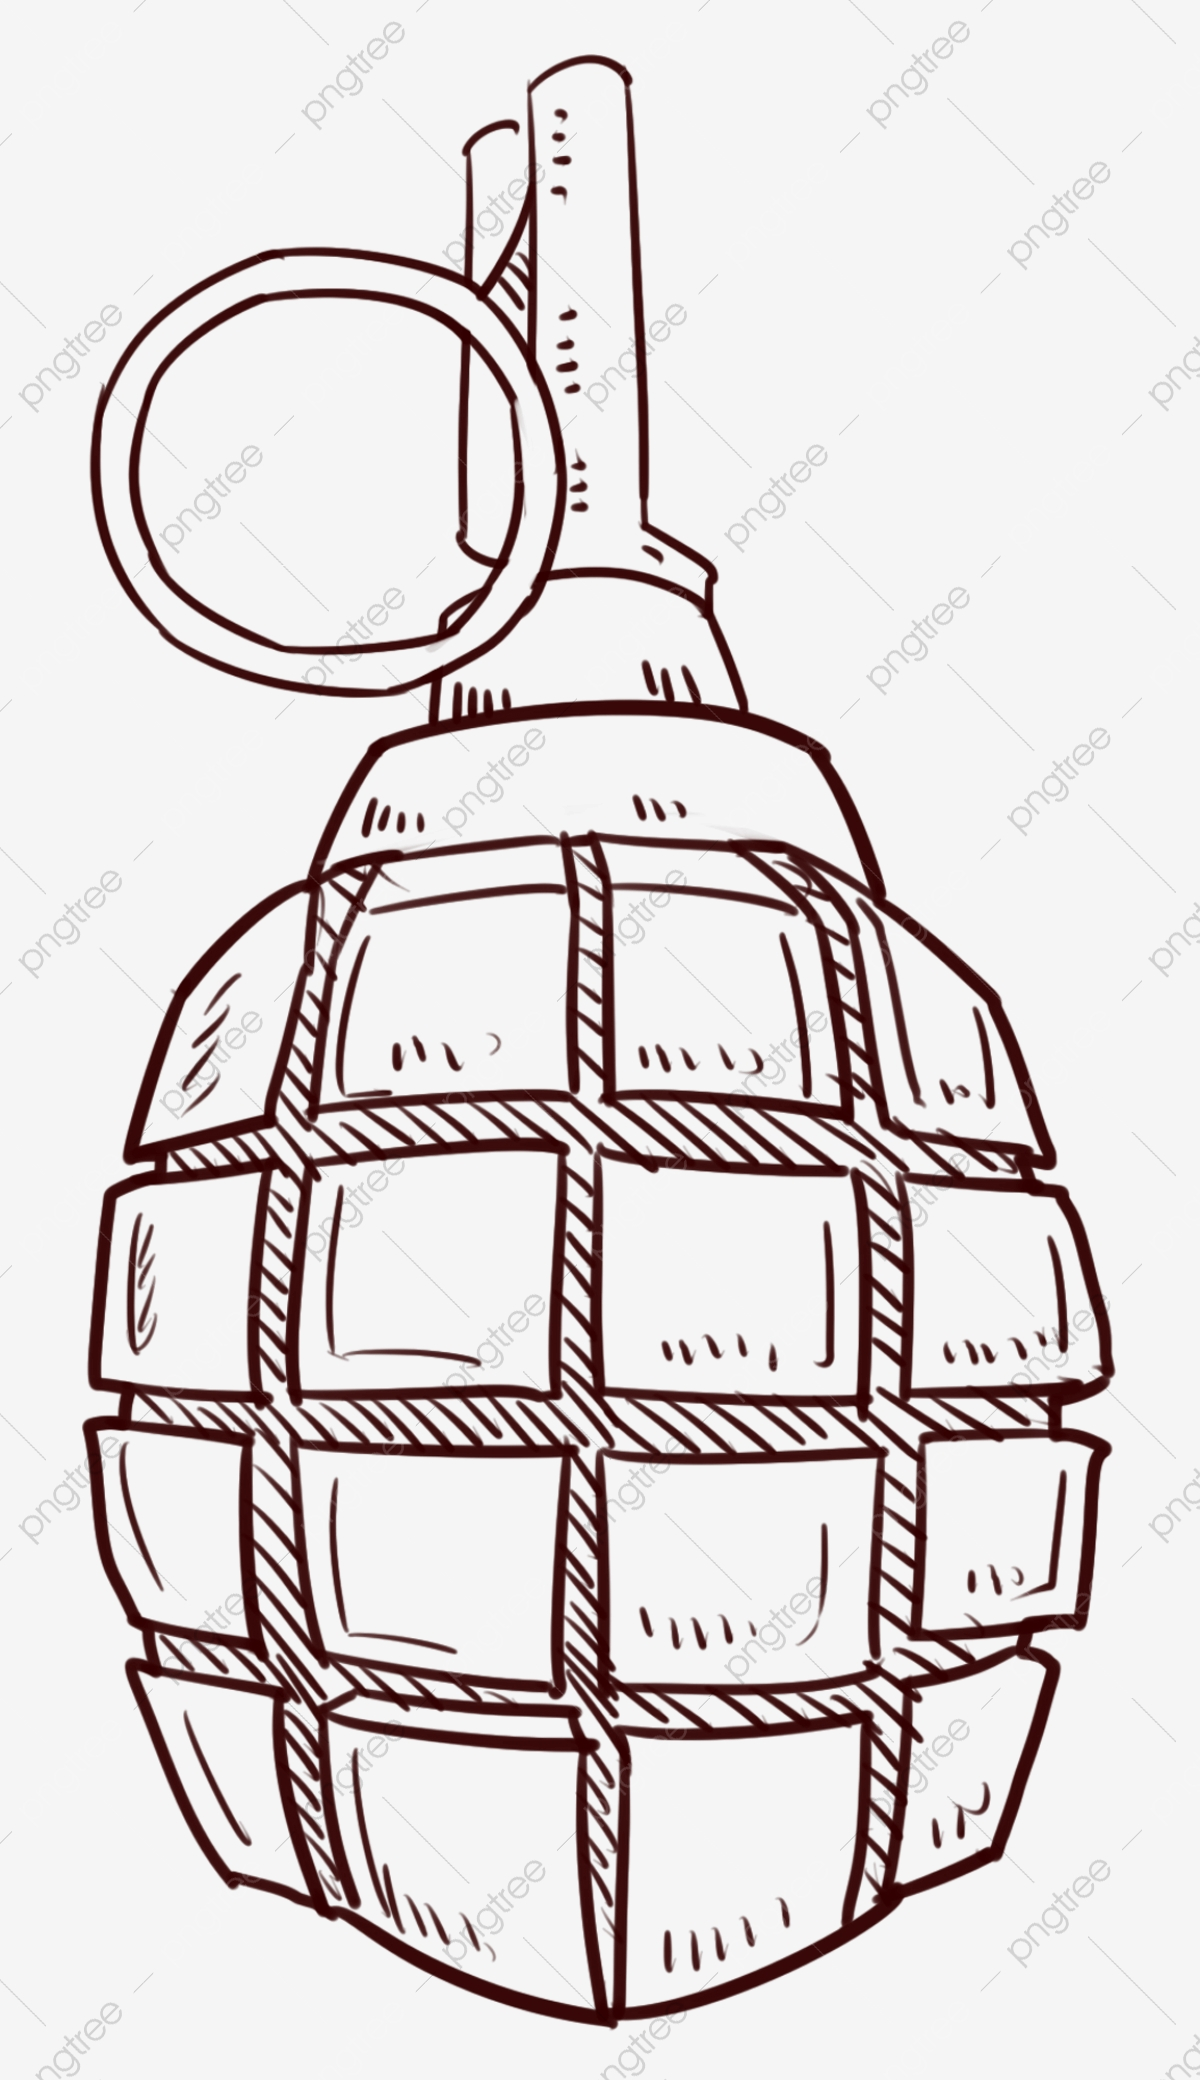 dessin au trait militaires illustration grenade grenade